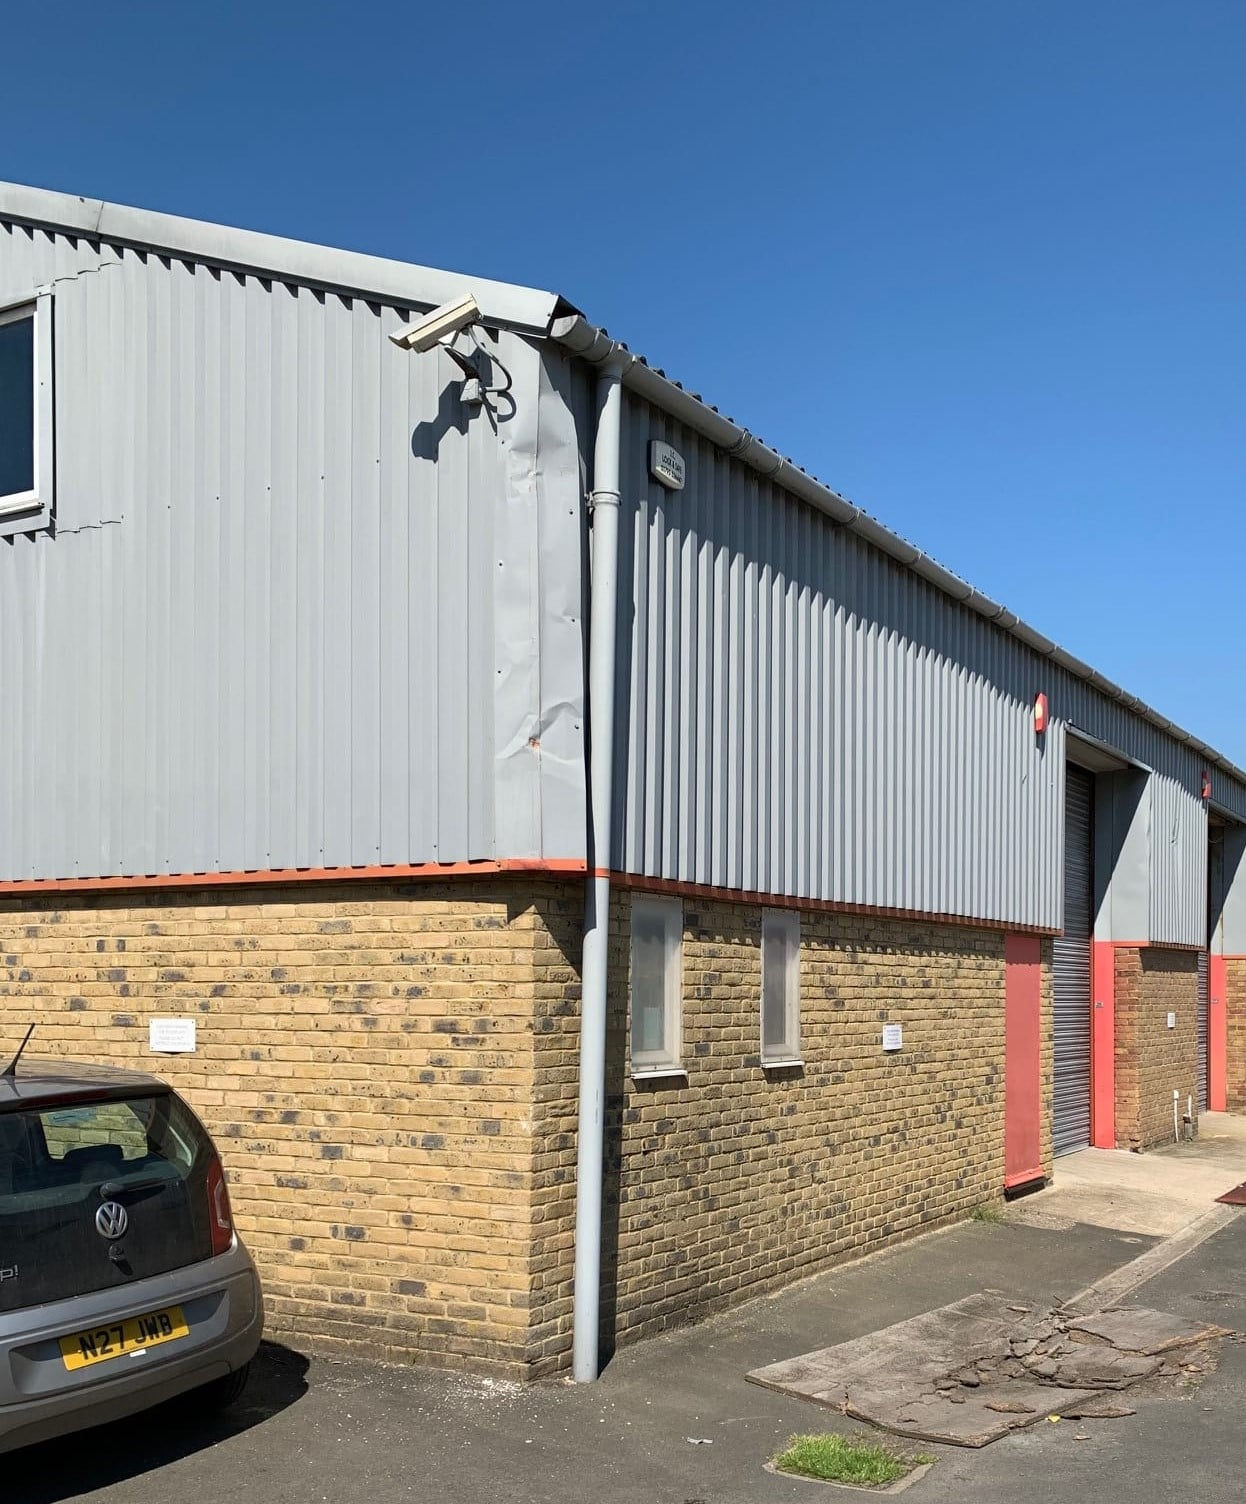 Repairs to cladding on an industrial building in Faversham Kent